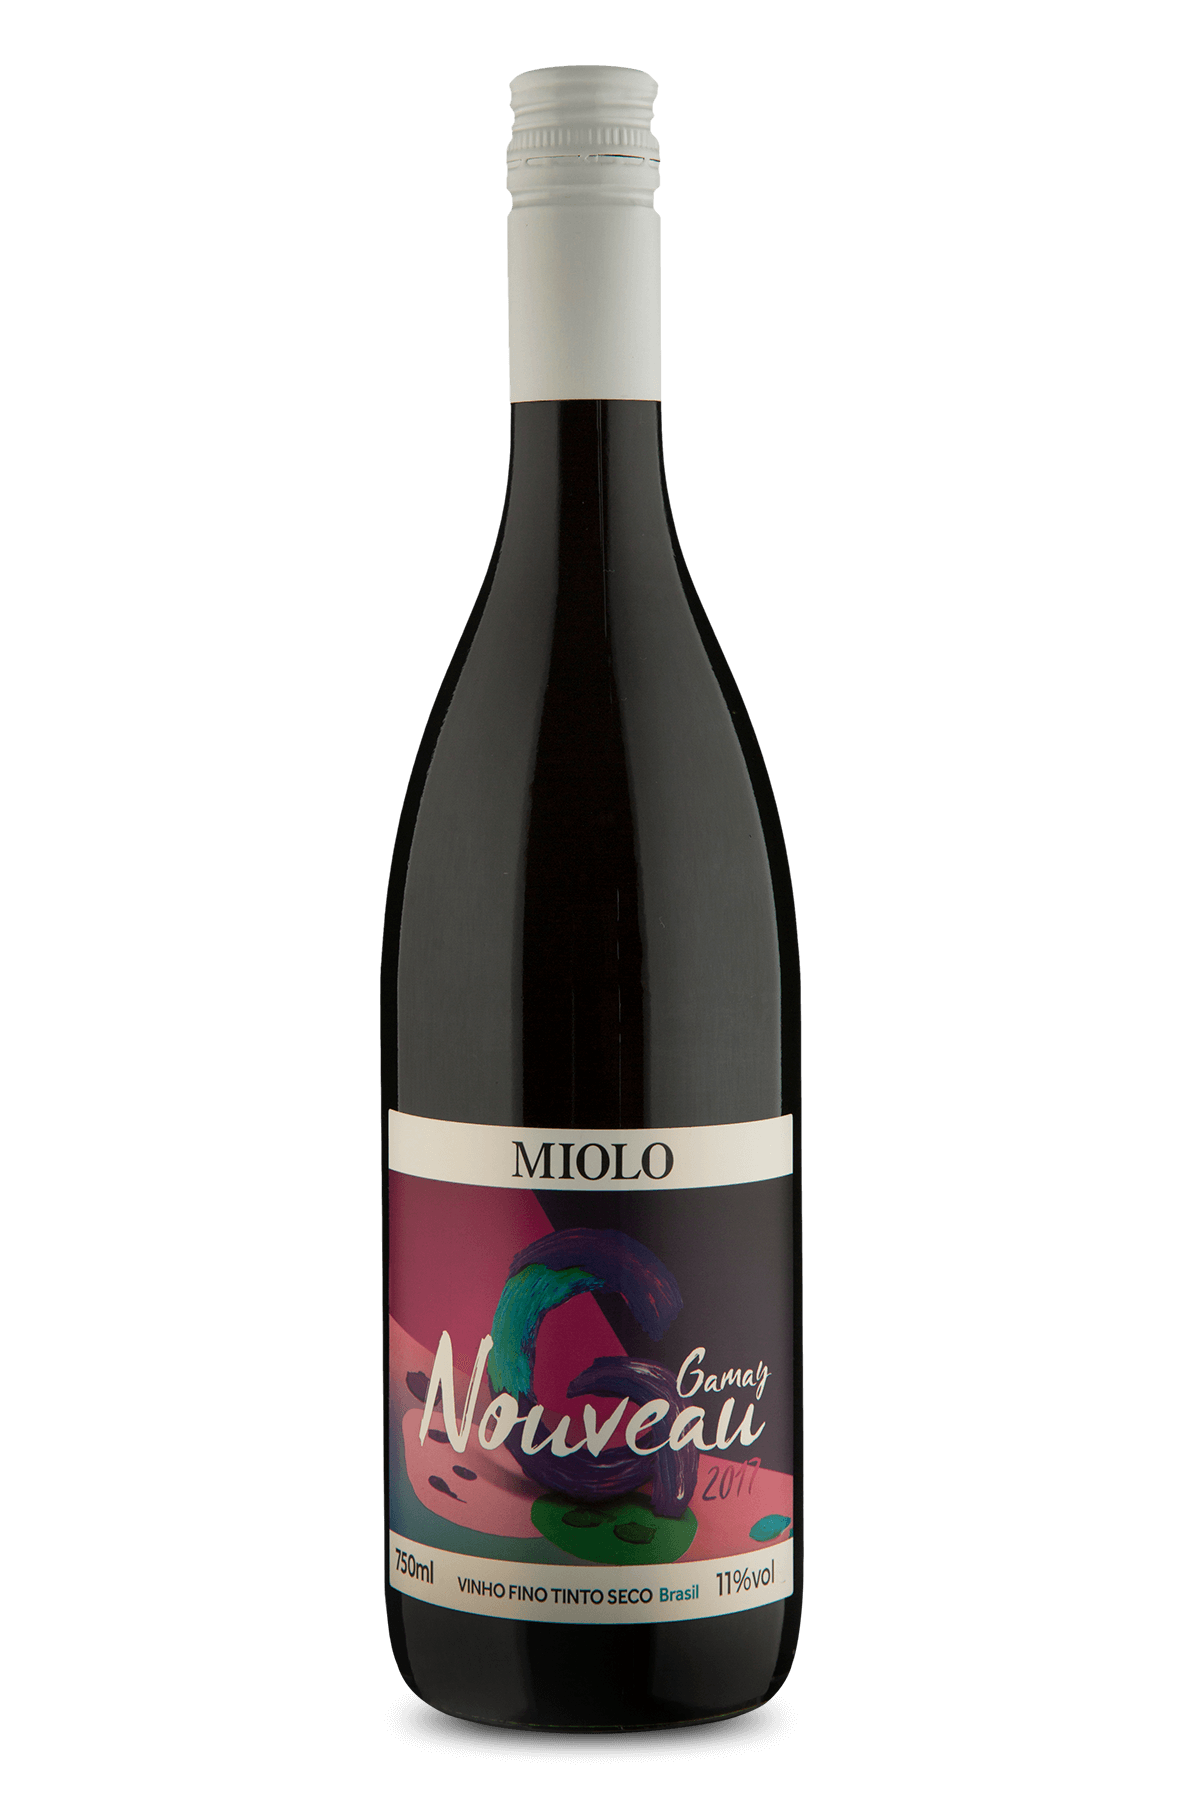 Miolo Gamay 2017